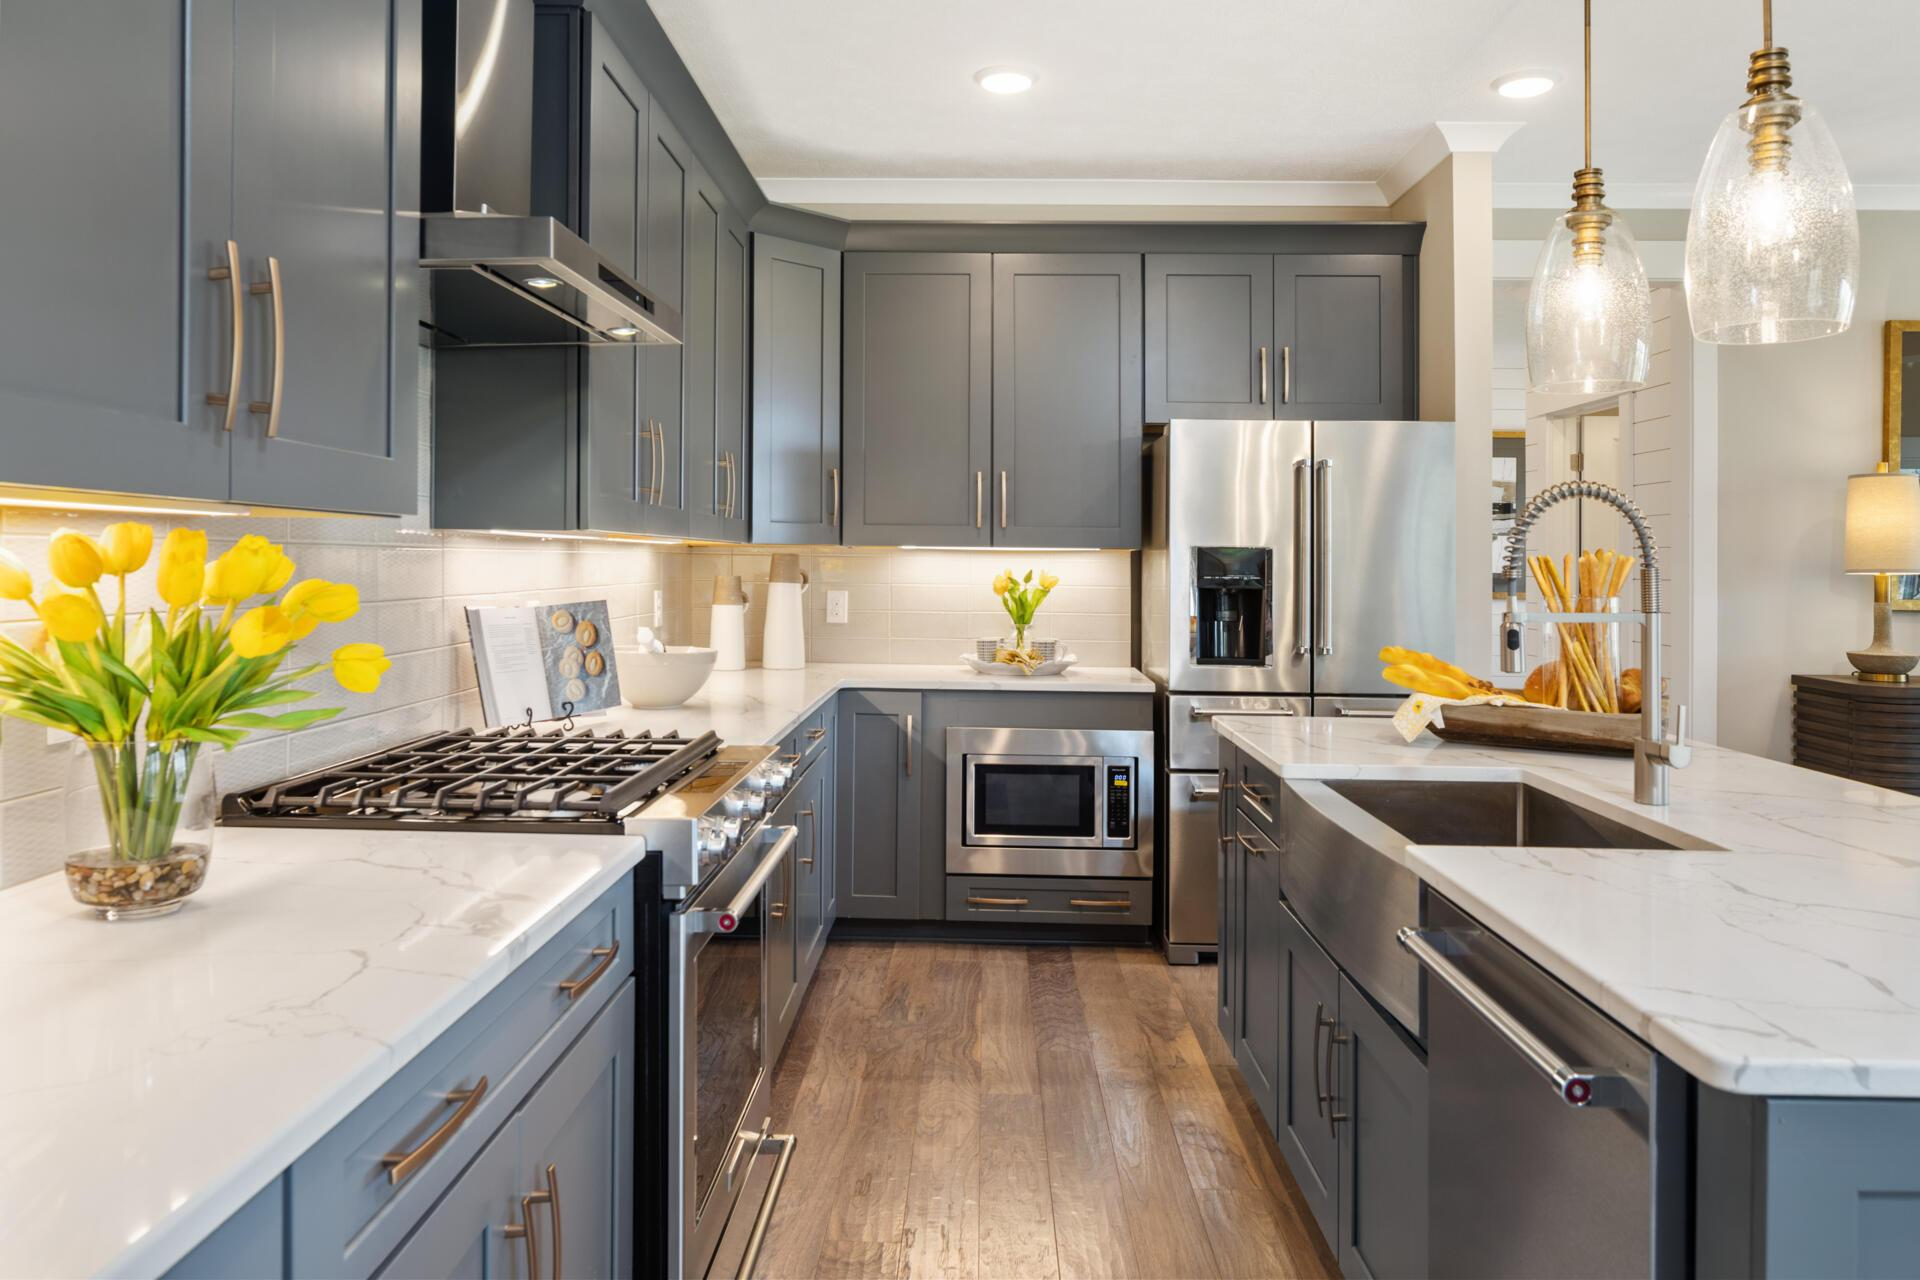 Kitchen featured in the Belleville By Drees Homes in Cleveland, OH